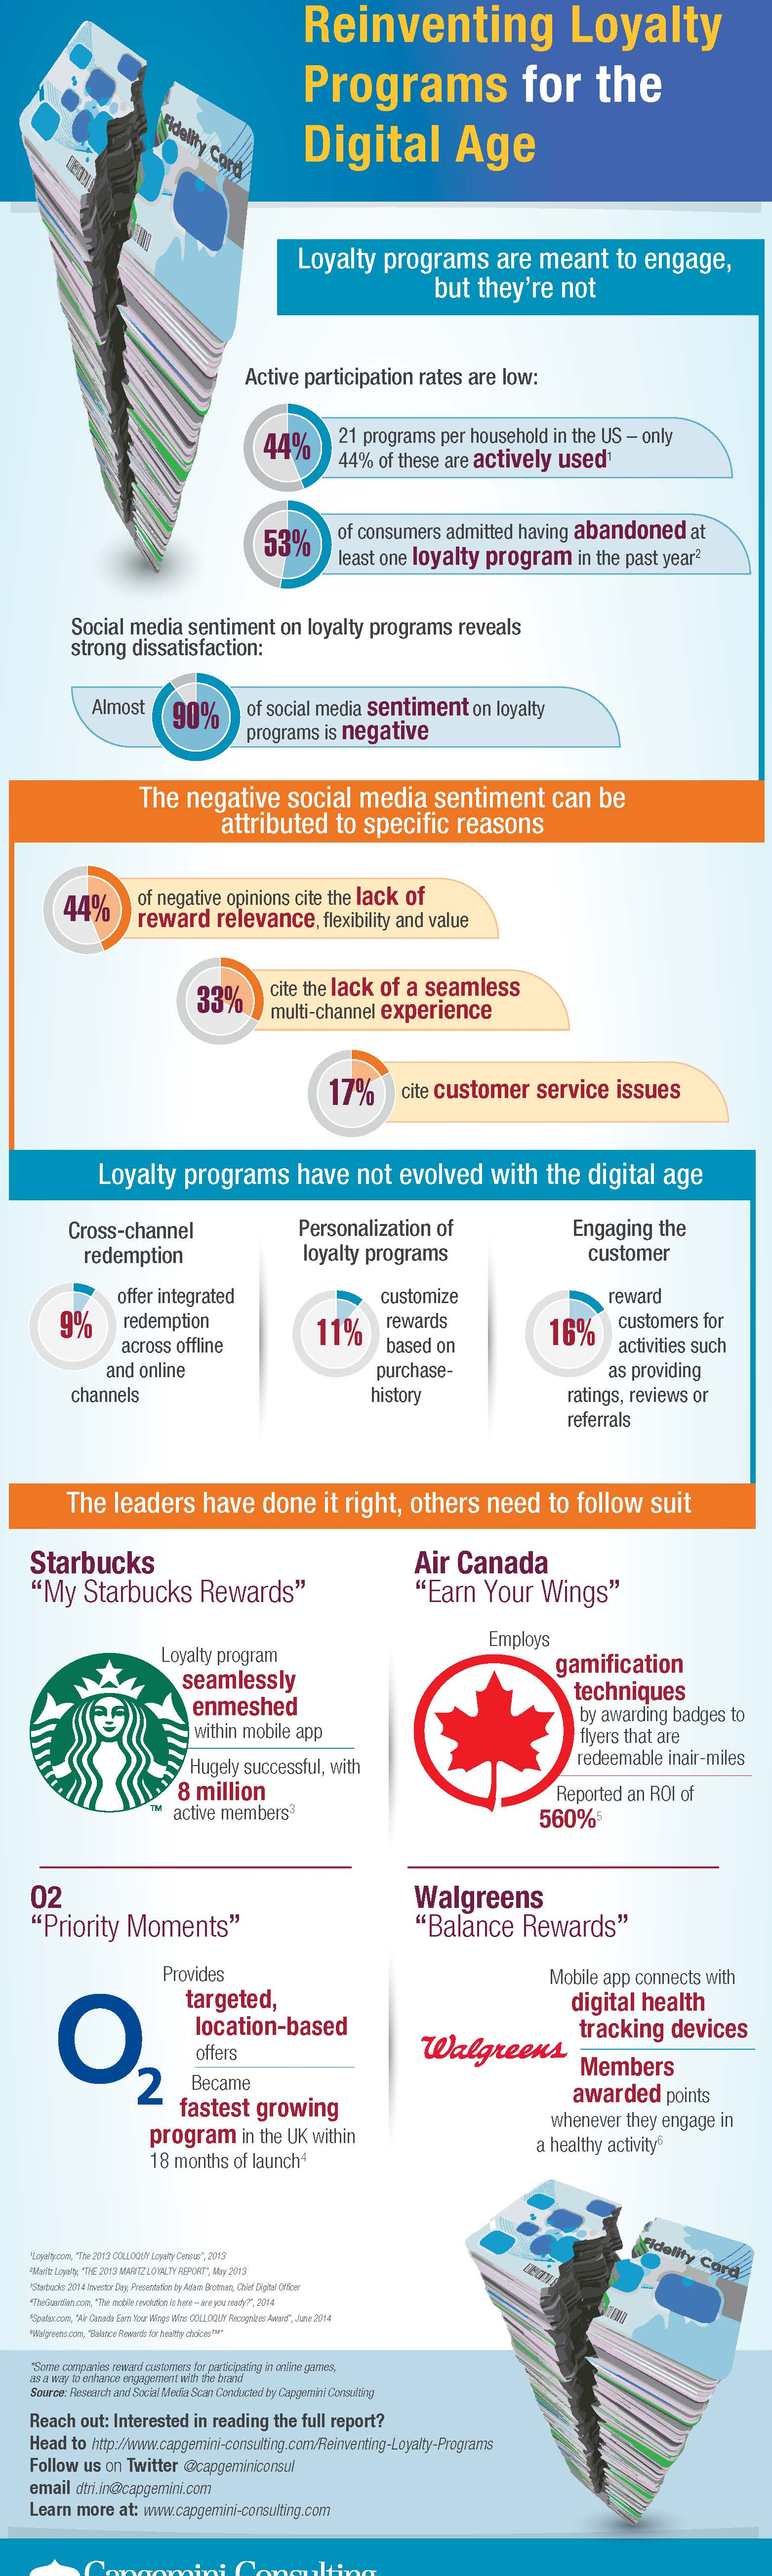 Standalone Infographic Content_Loyalty Programs